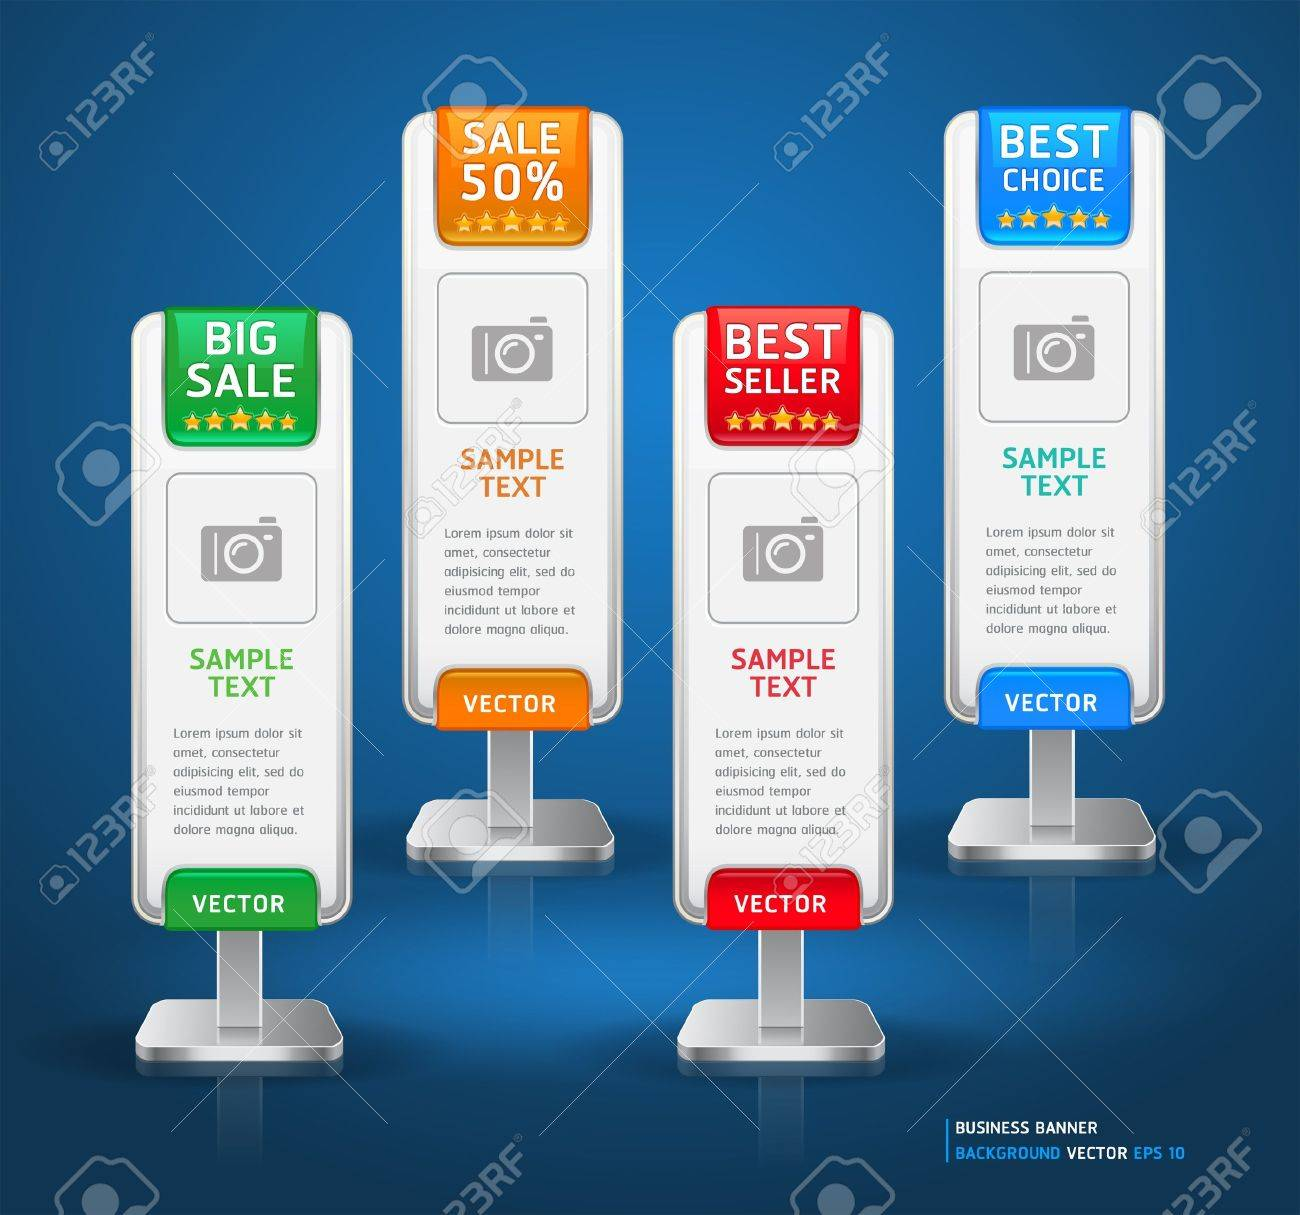 Business Stand Display Banner   Card Background  Vector illustration  More banner in my portfolio Stock Vector - 16176238